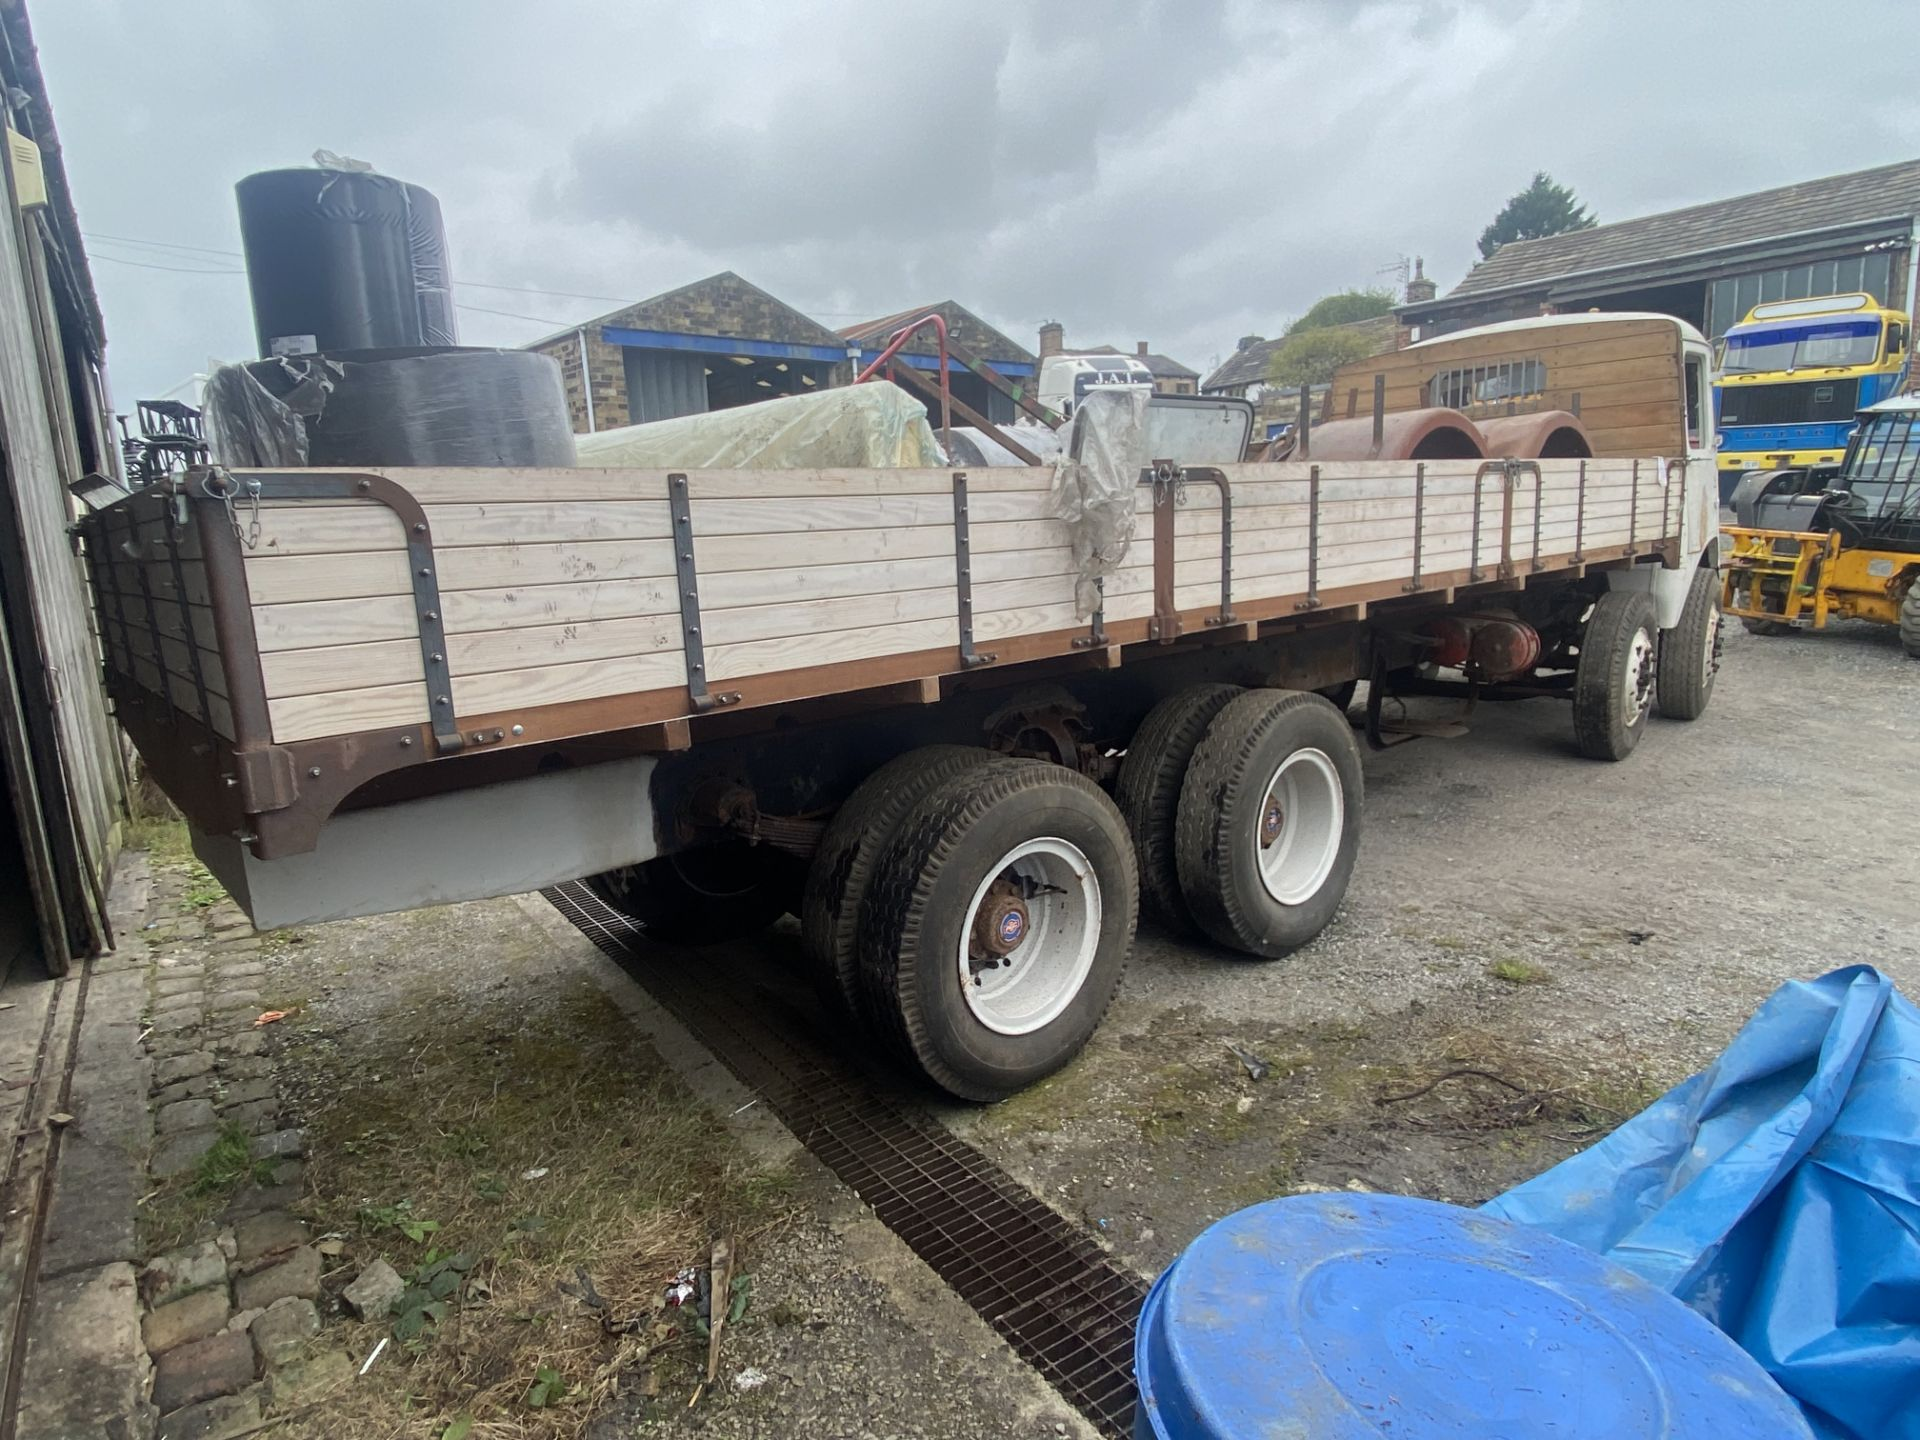 AEC Mammoth Major 8x4 Rigid Timber Dropside Truck, partially restored, with quantity of spare - Image 3 of 21